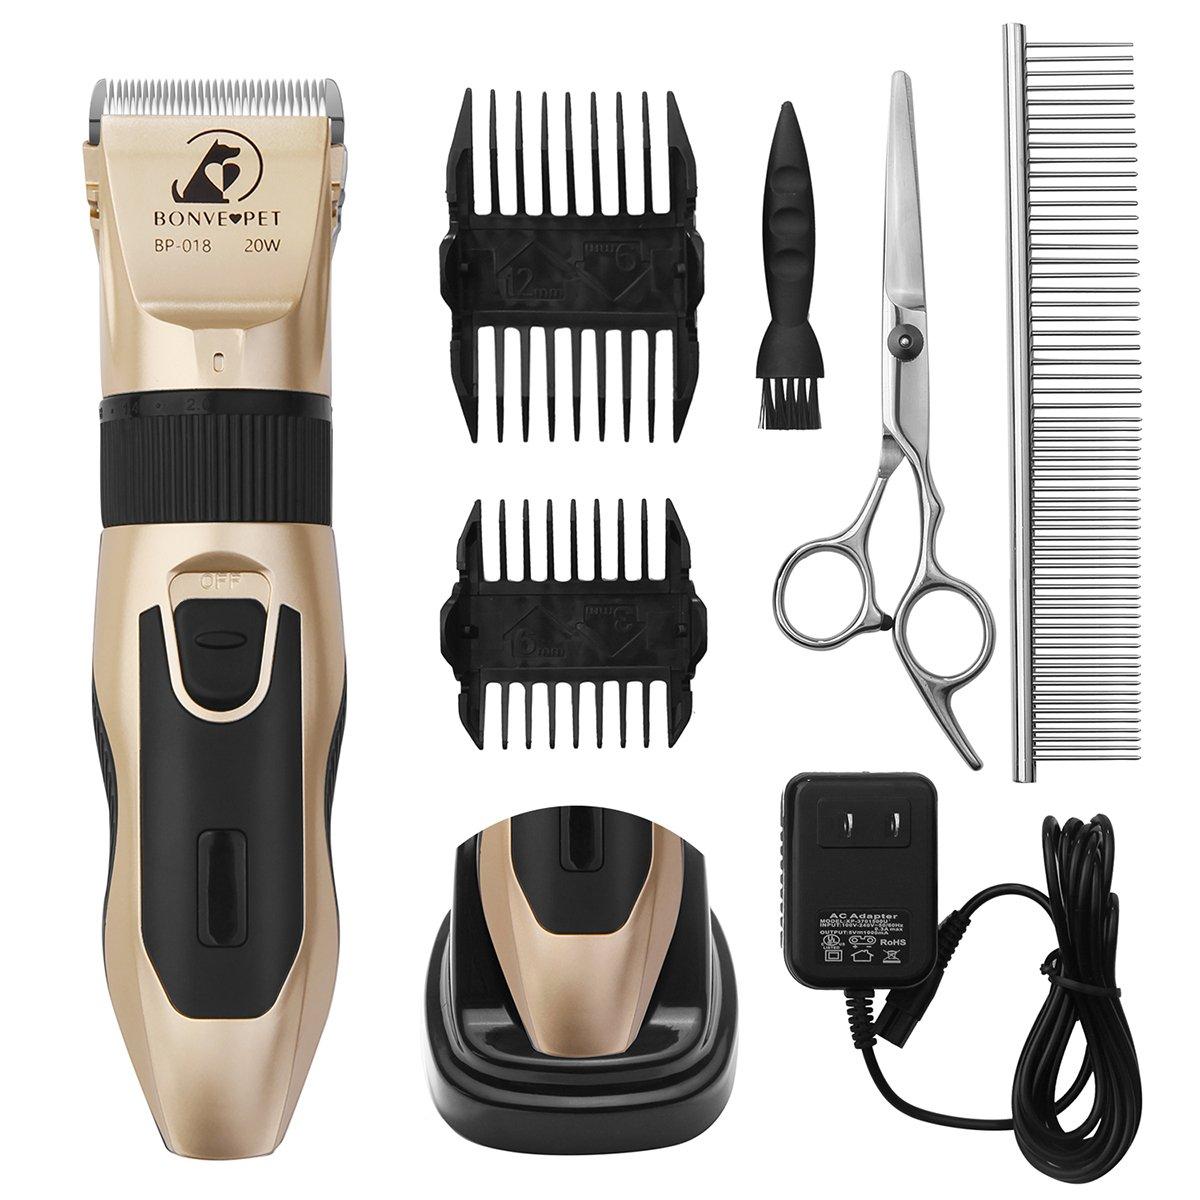 Dog Grooming Clippers - Cordless Quiet Pet Hair Clippers Trimmer Rechargeable with Stainless Steel Blades Dog Comb Shears Best Professional Hair Clipper Set for Dogs Cats Pets Long Short Hair,Gold